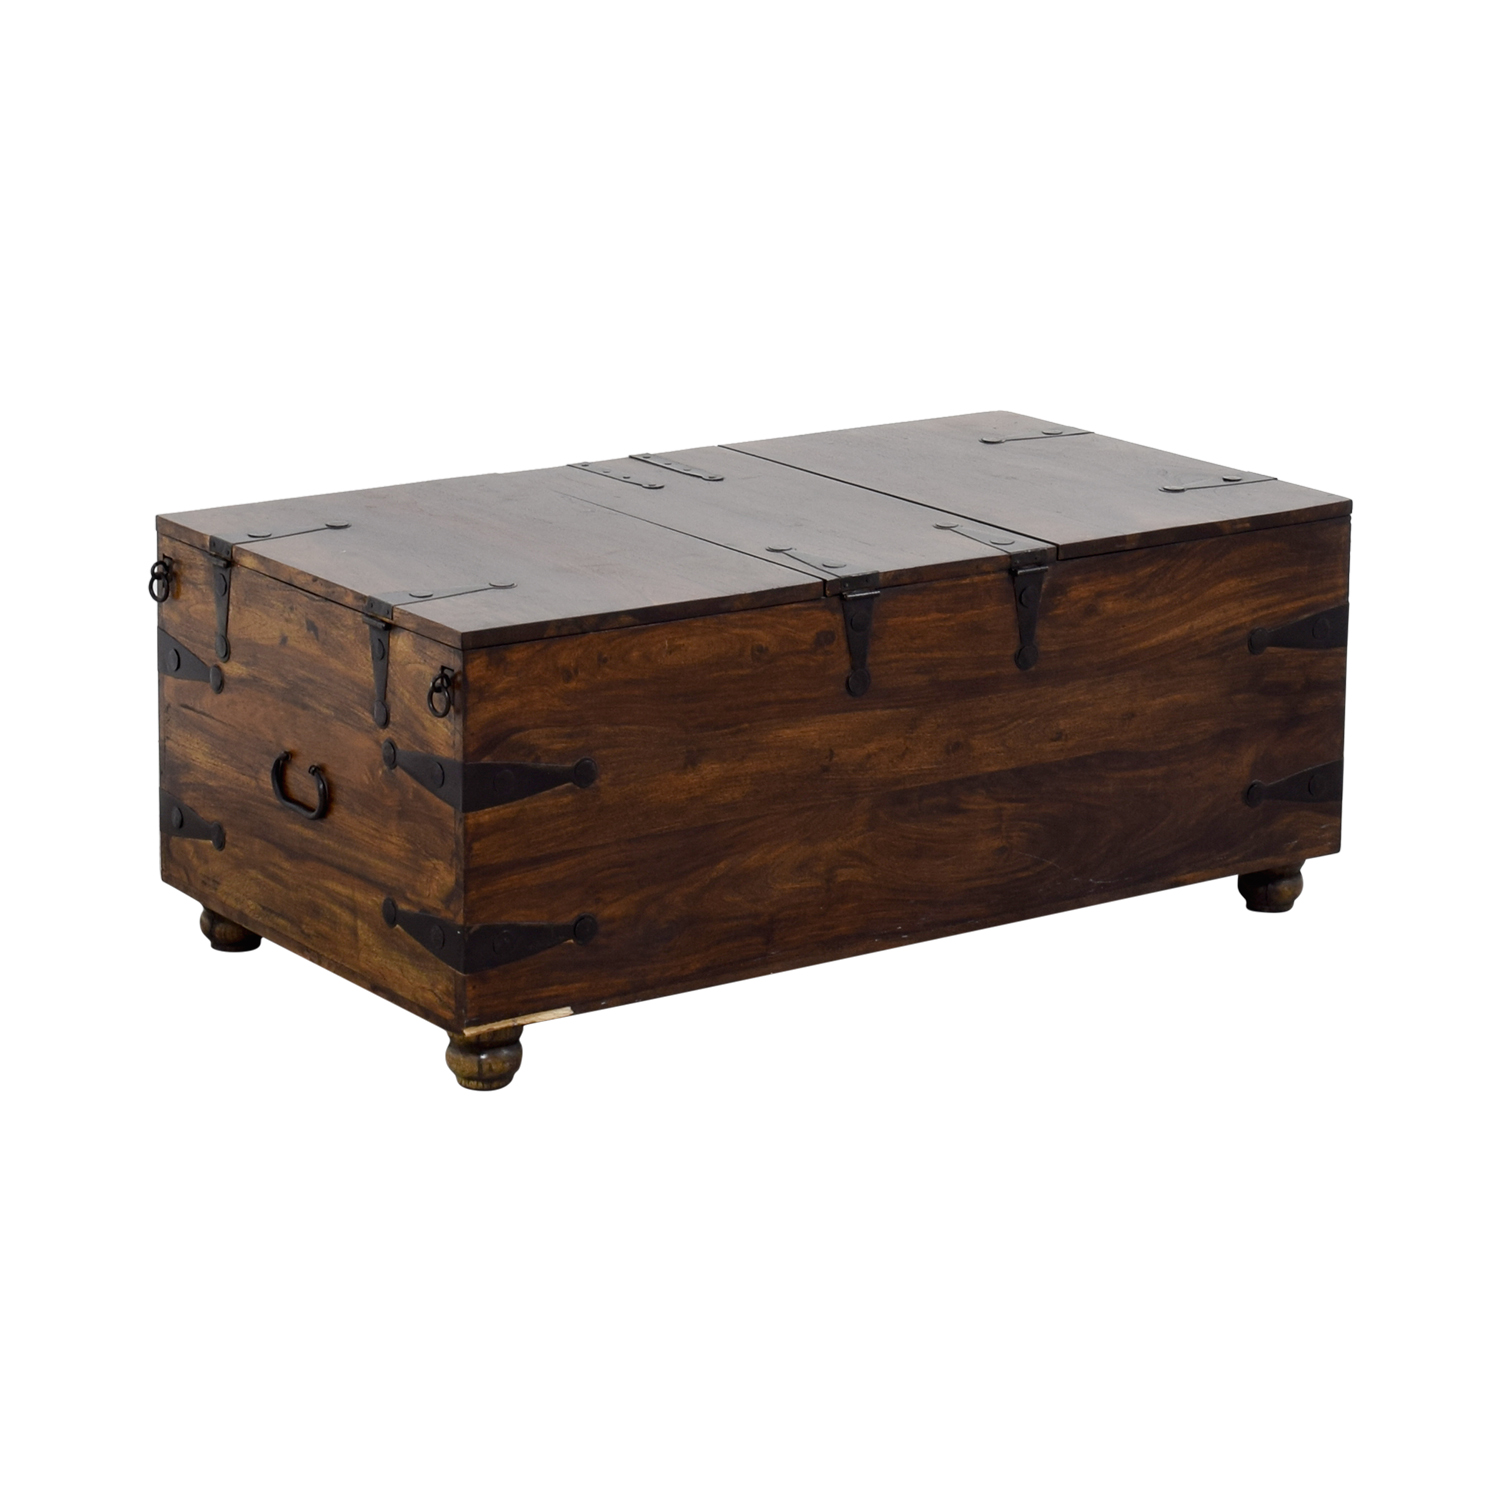 ... Shop Crate U0026 Barrel Trunk Coffee Table Crate U0026 Barrel ...